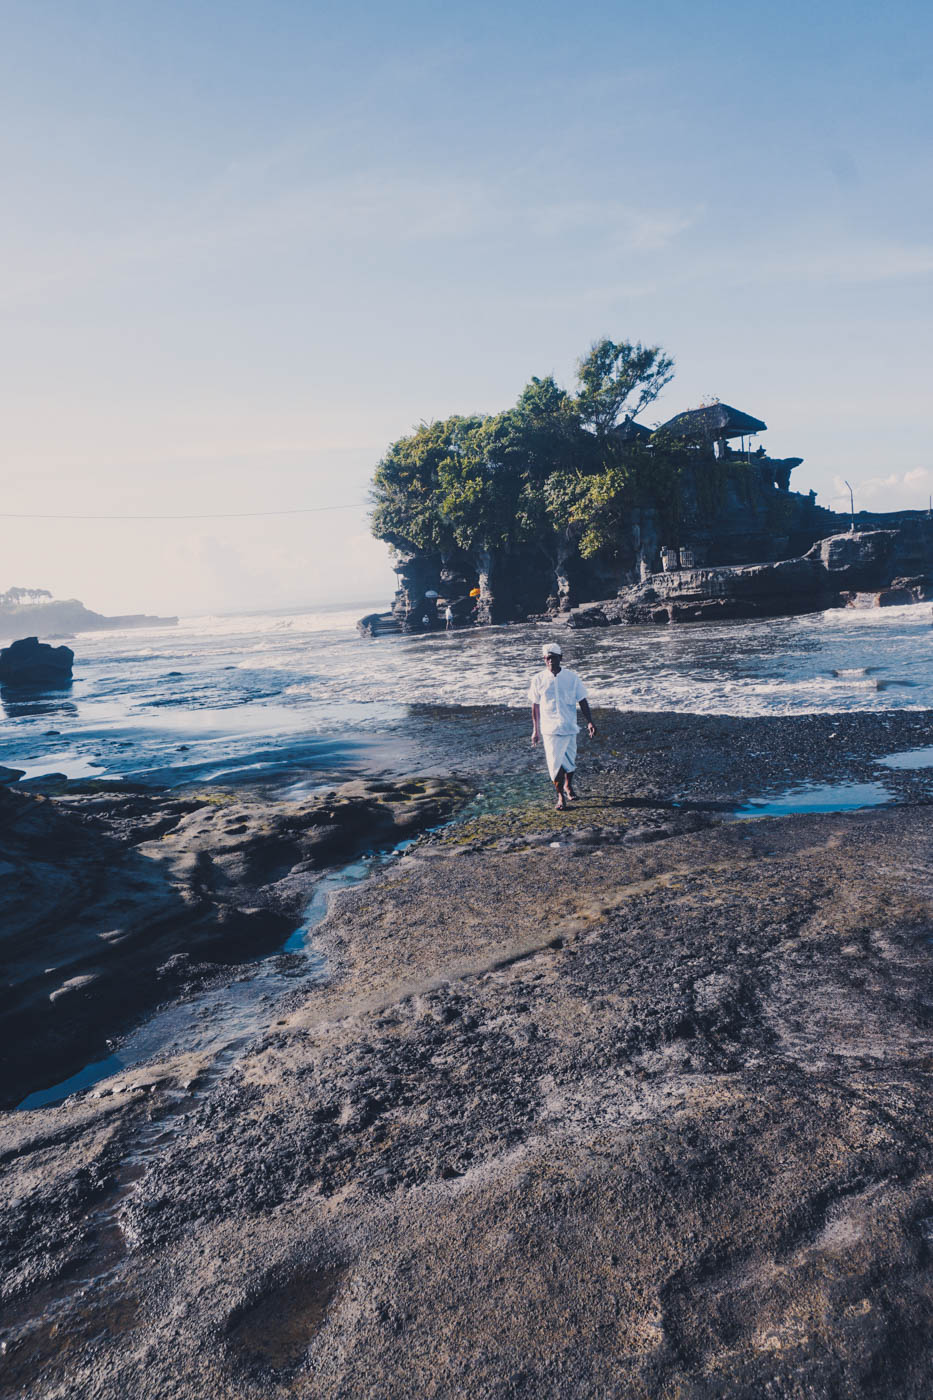 Tanah Lot Holy Sea Temple - Best Things to do in Bali. Beautiful beaches, gorgeous fashion and cultural Ubud #bali #traveldestinations #bucketlist #wanderlust